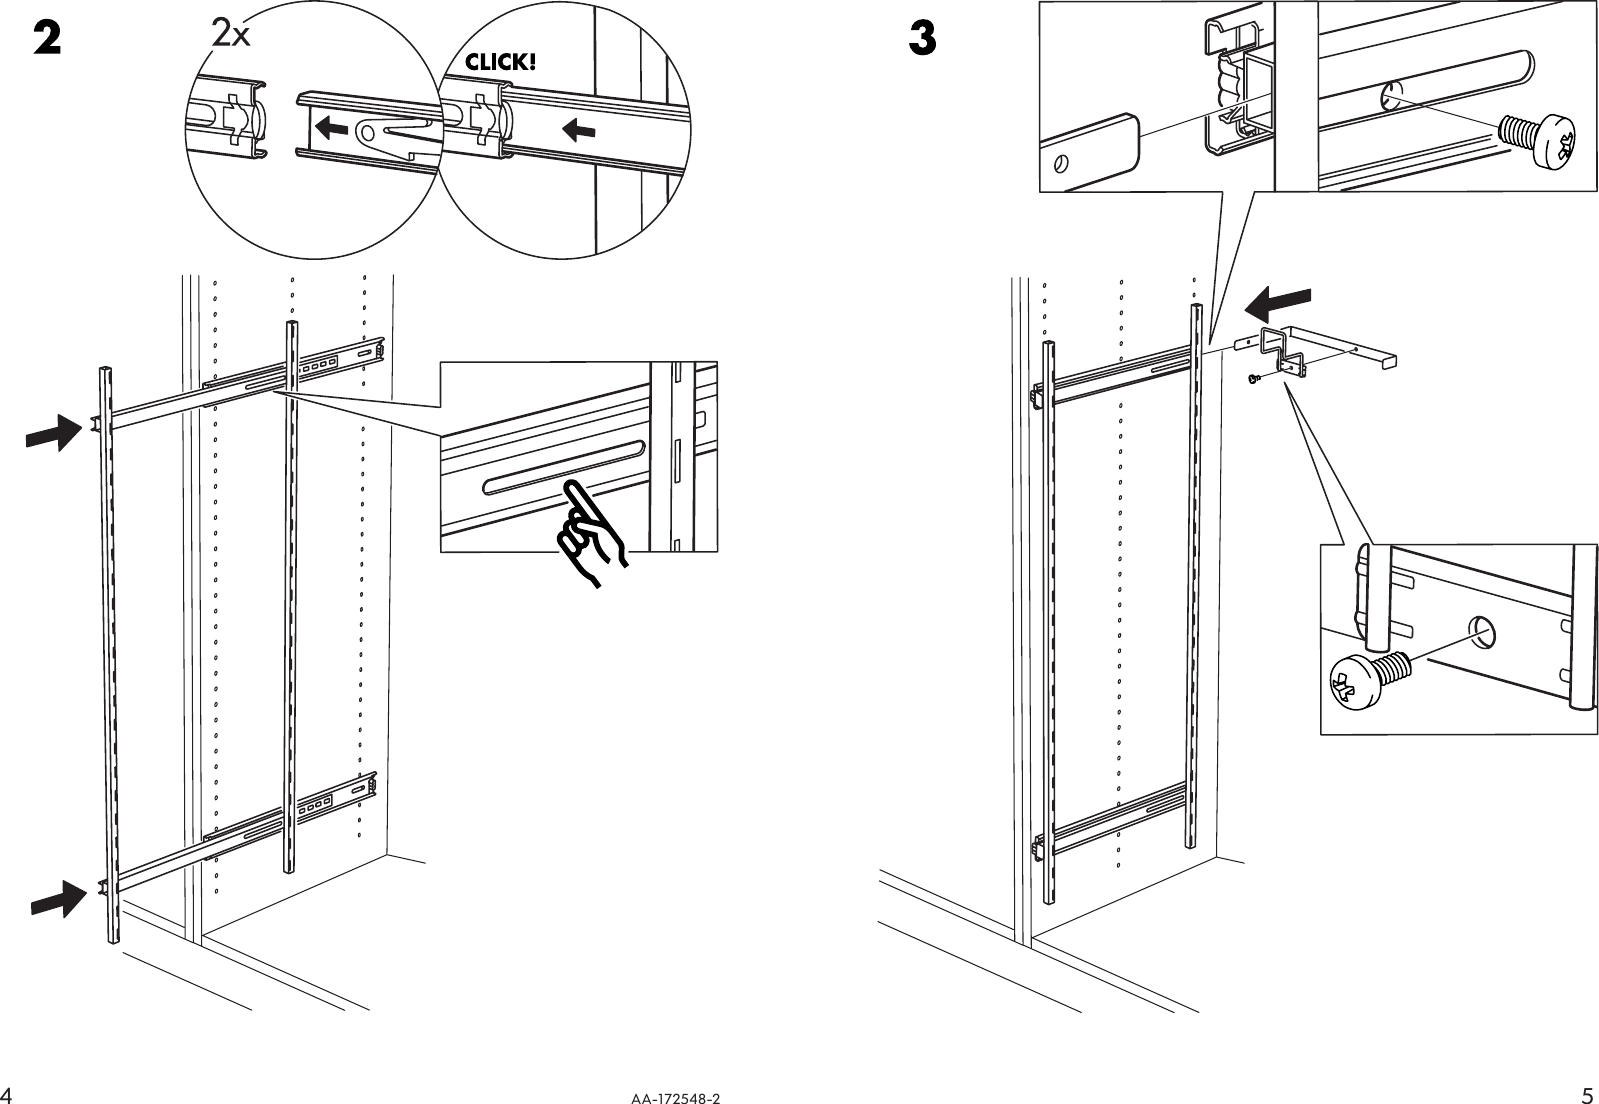 Ikea Faktum Instructions Ikea Rationell Pull Out Interior Fittings 12x47 Assembly Instruction